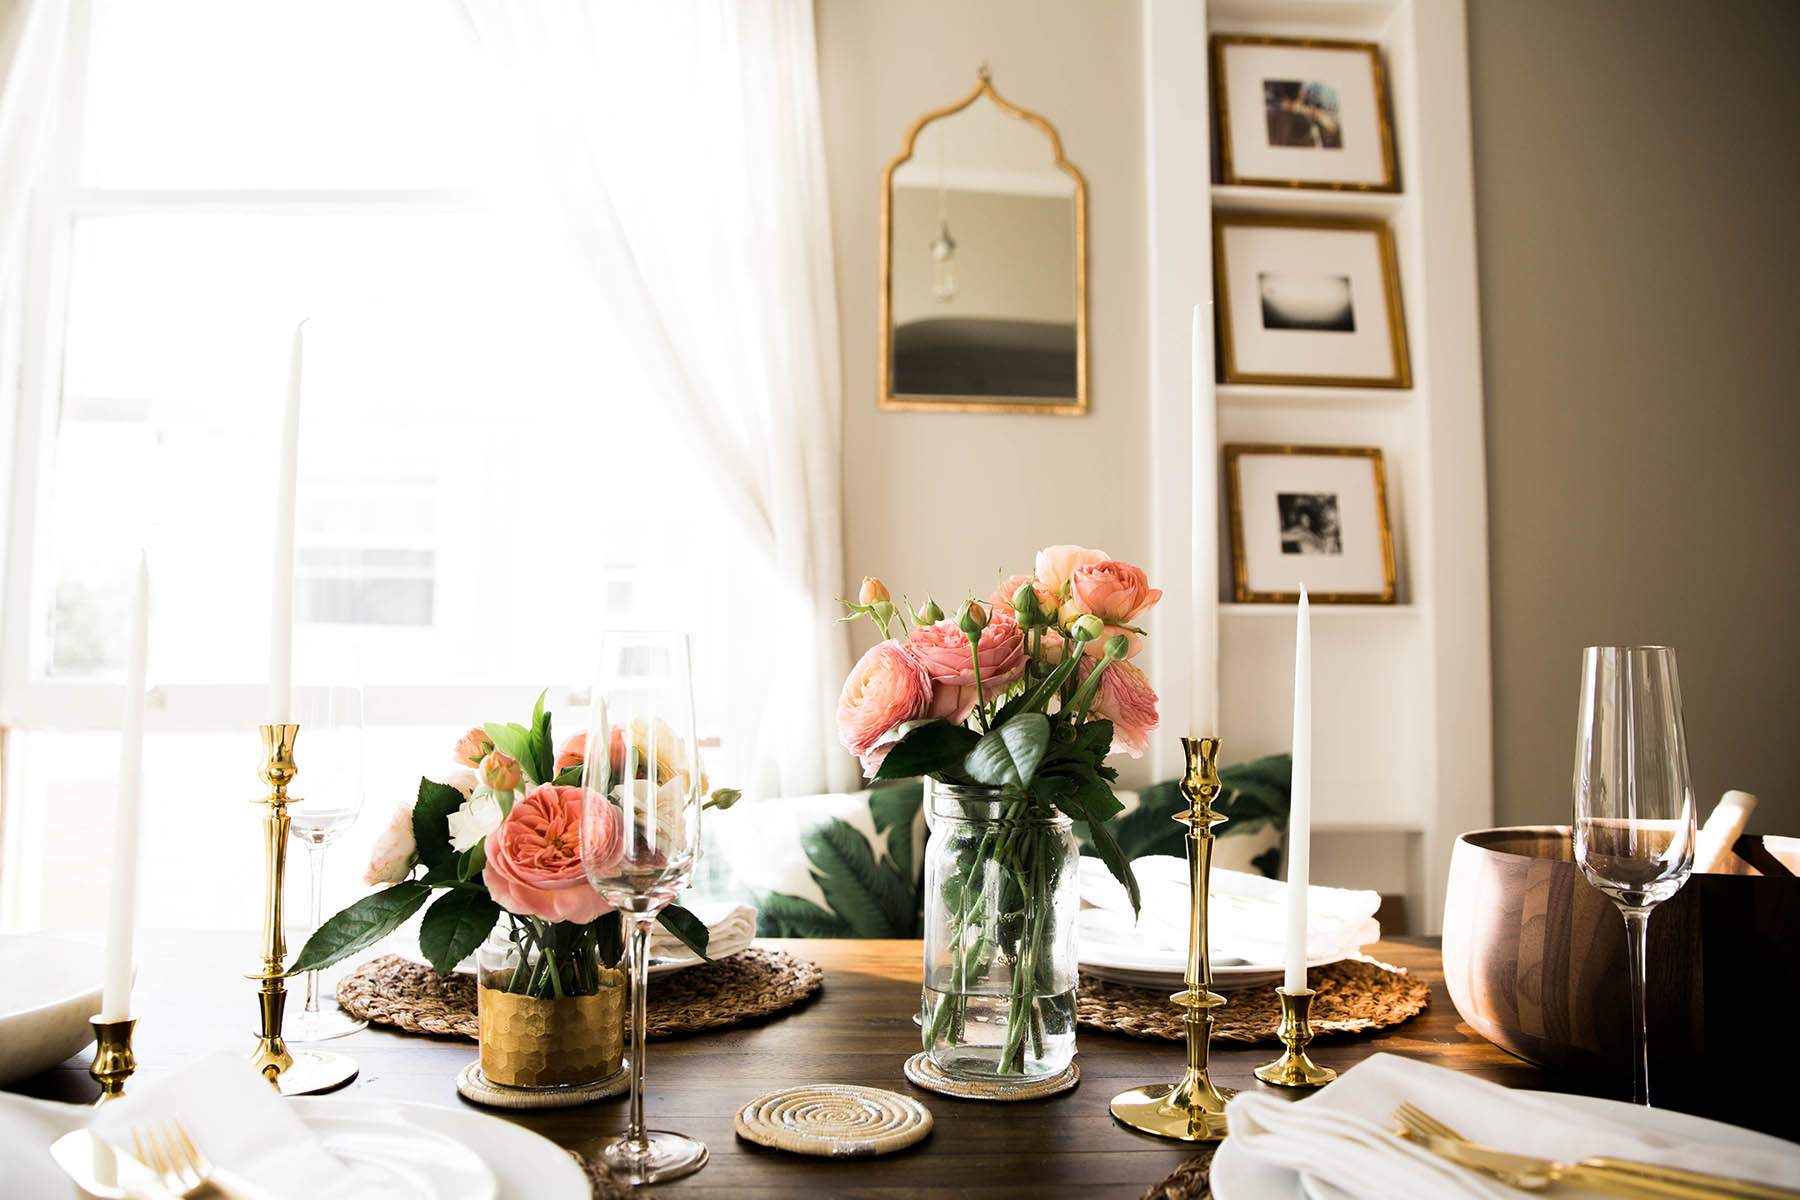 gold, white and pink table decor and flowers